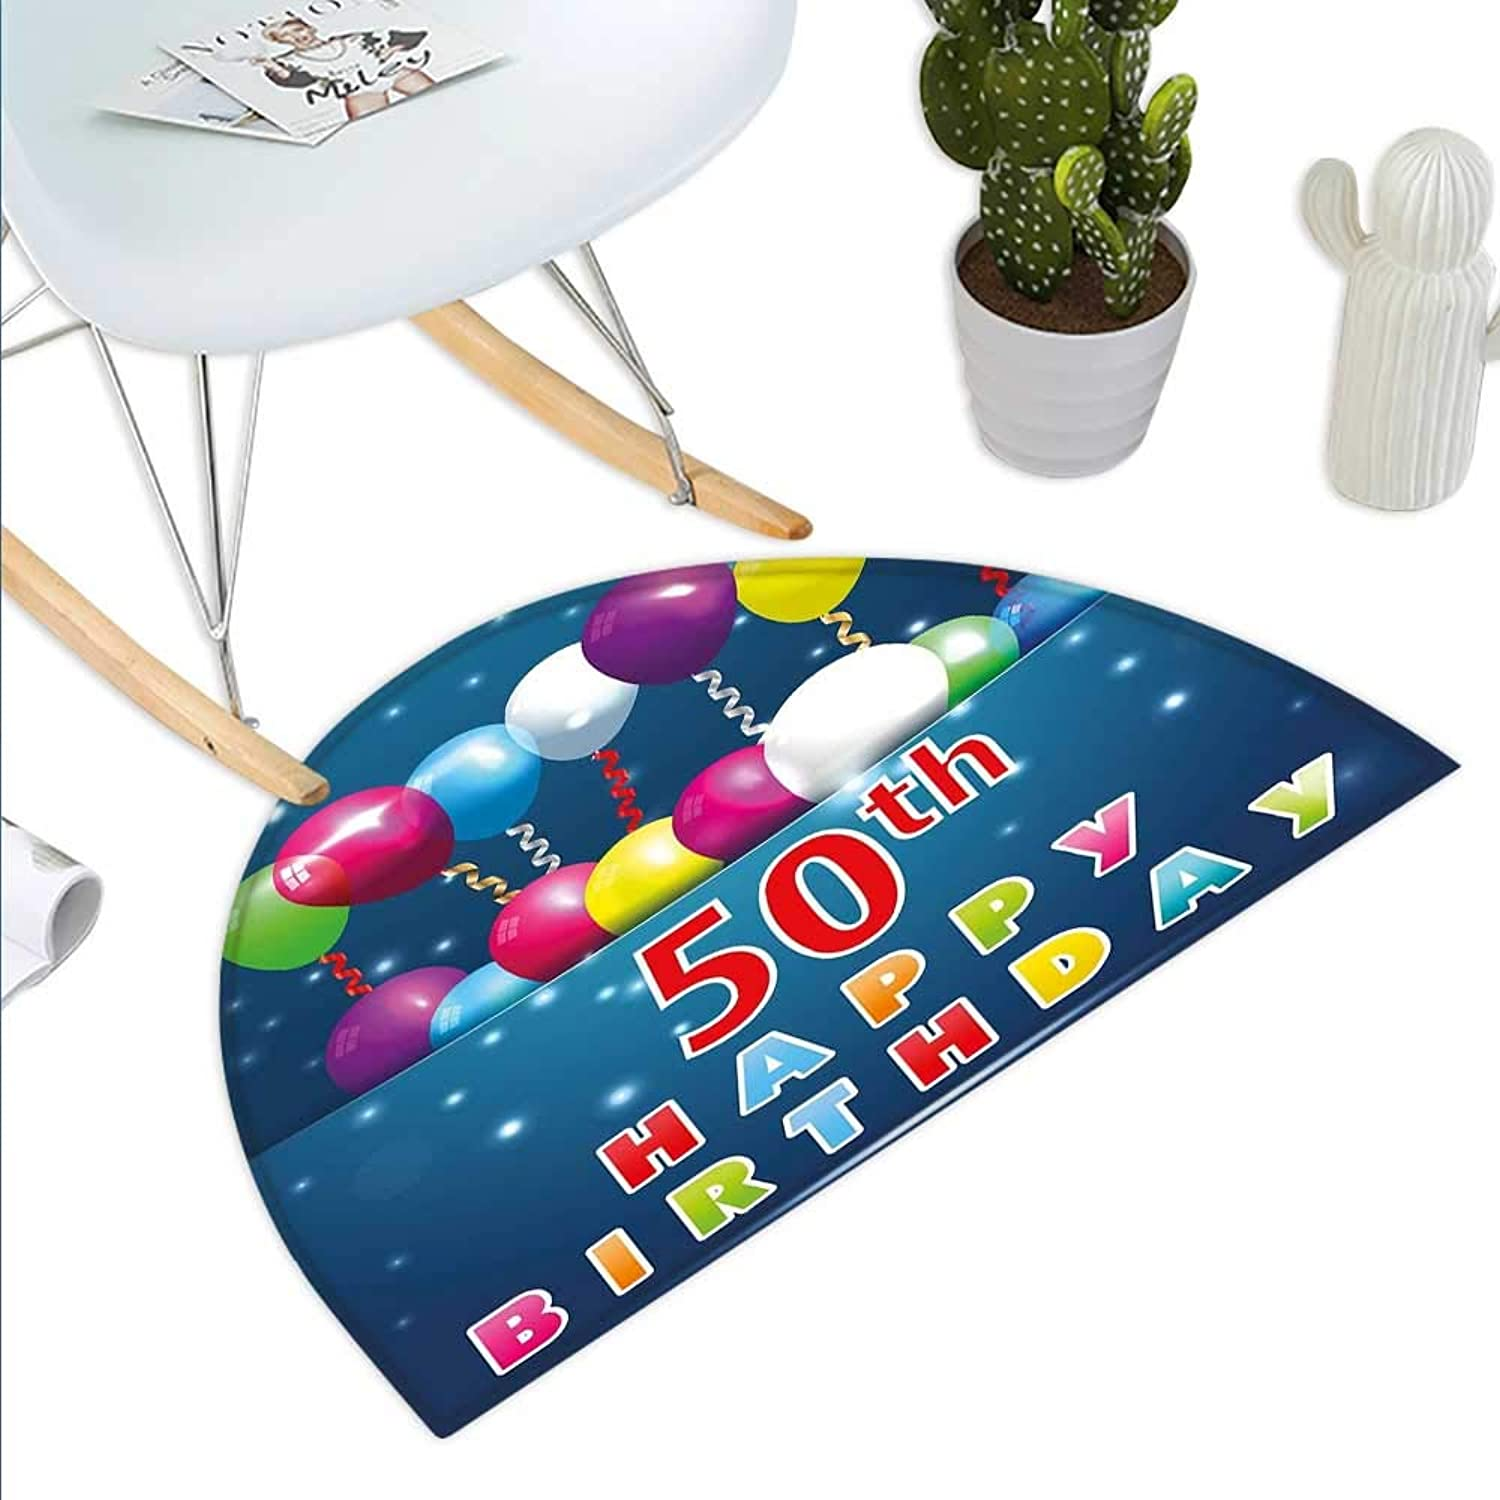 50th Birthday Semicircle Doormat Joyful Mood Occasion Surprise colorful Lettering Stars Balloons and Ribbons Halfmoon doormats H 43.3  xD 64.9  Multicolor